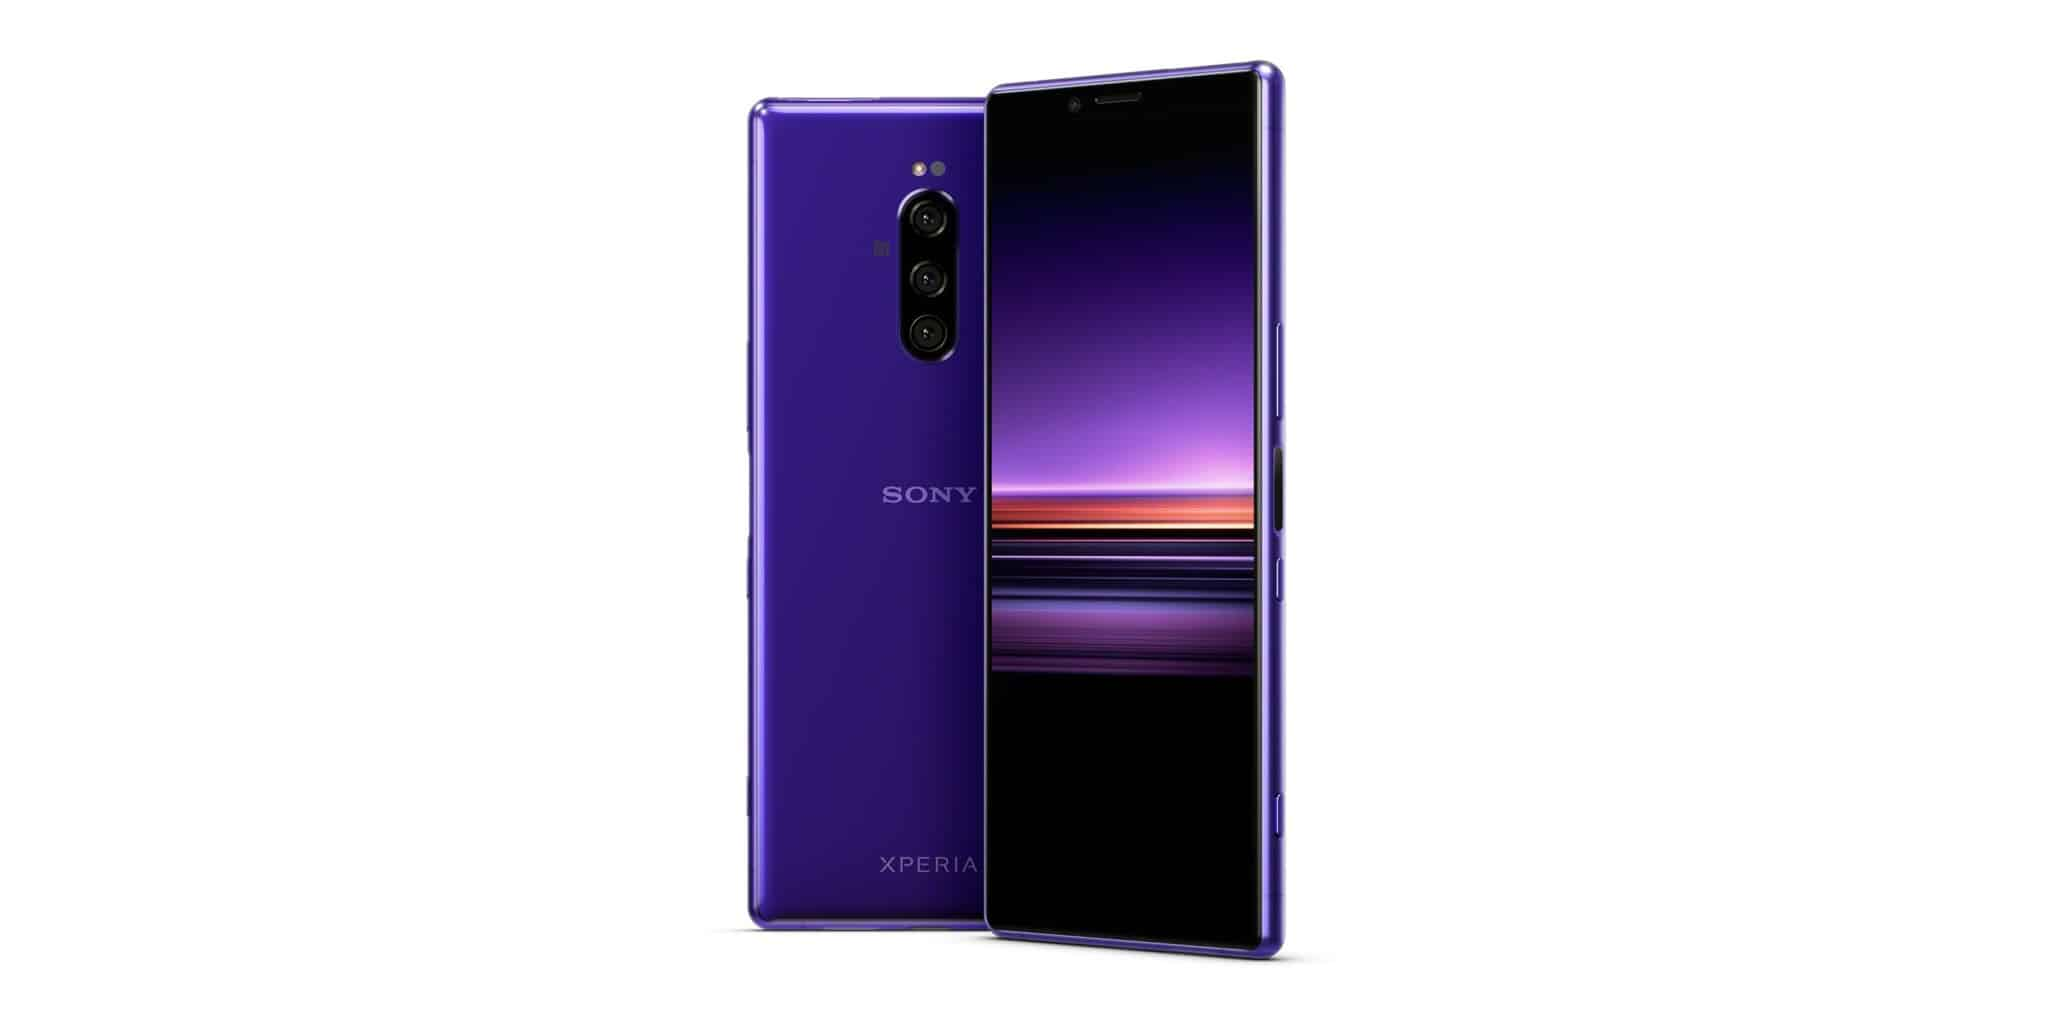 Sony starts Innovative with its Xperia 1 Flagship with 21:9 Cinematic 4K OLED Panel & Triple Digital cameras